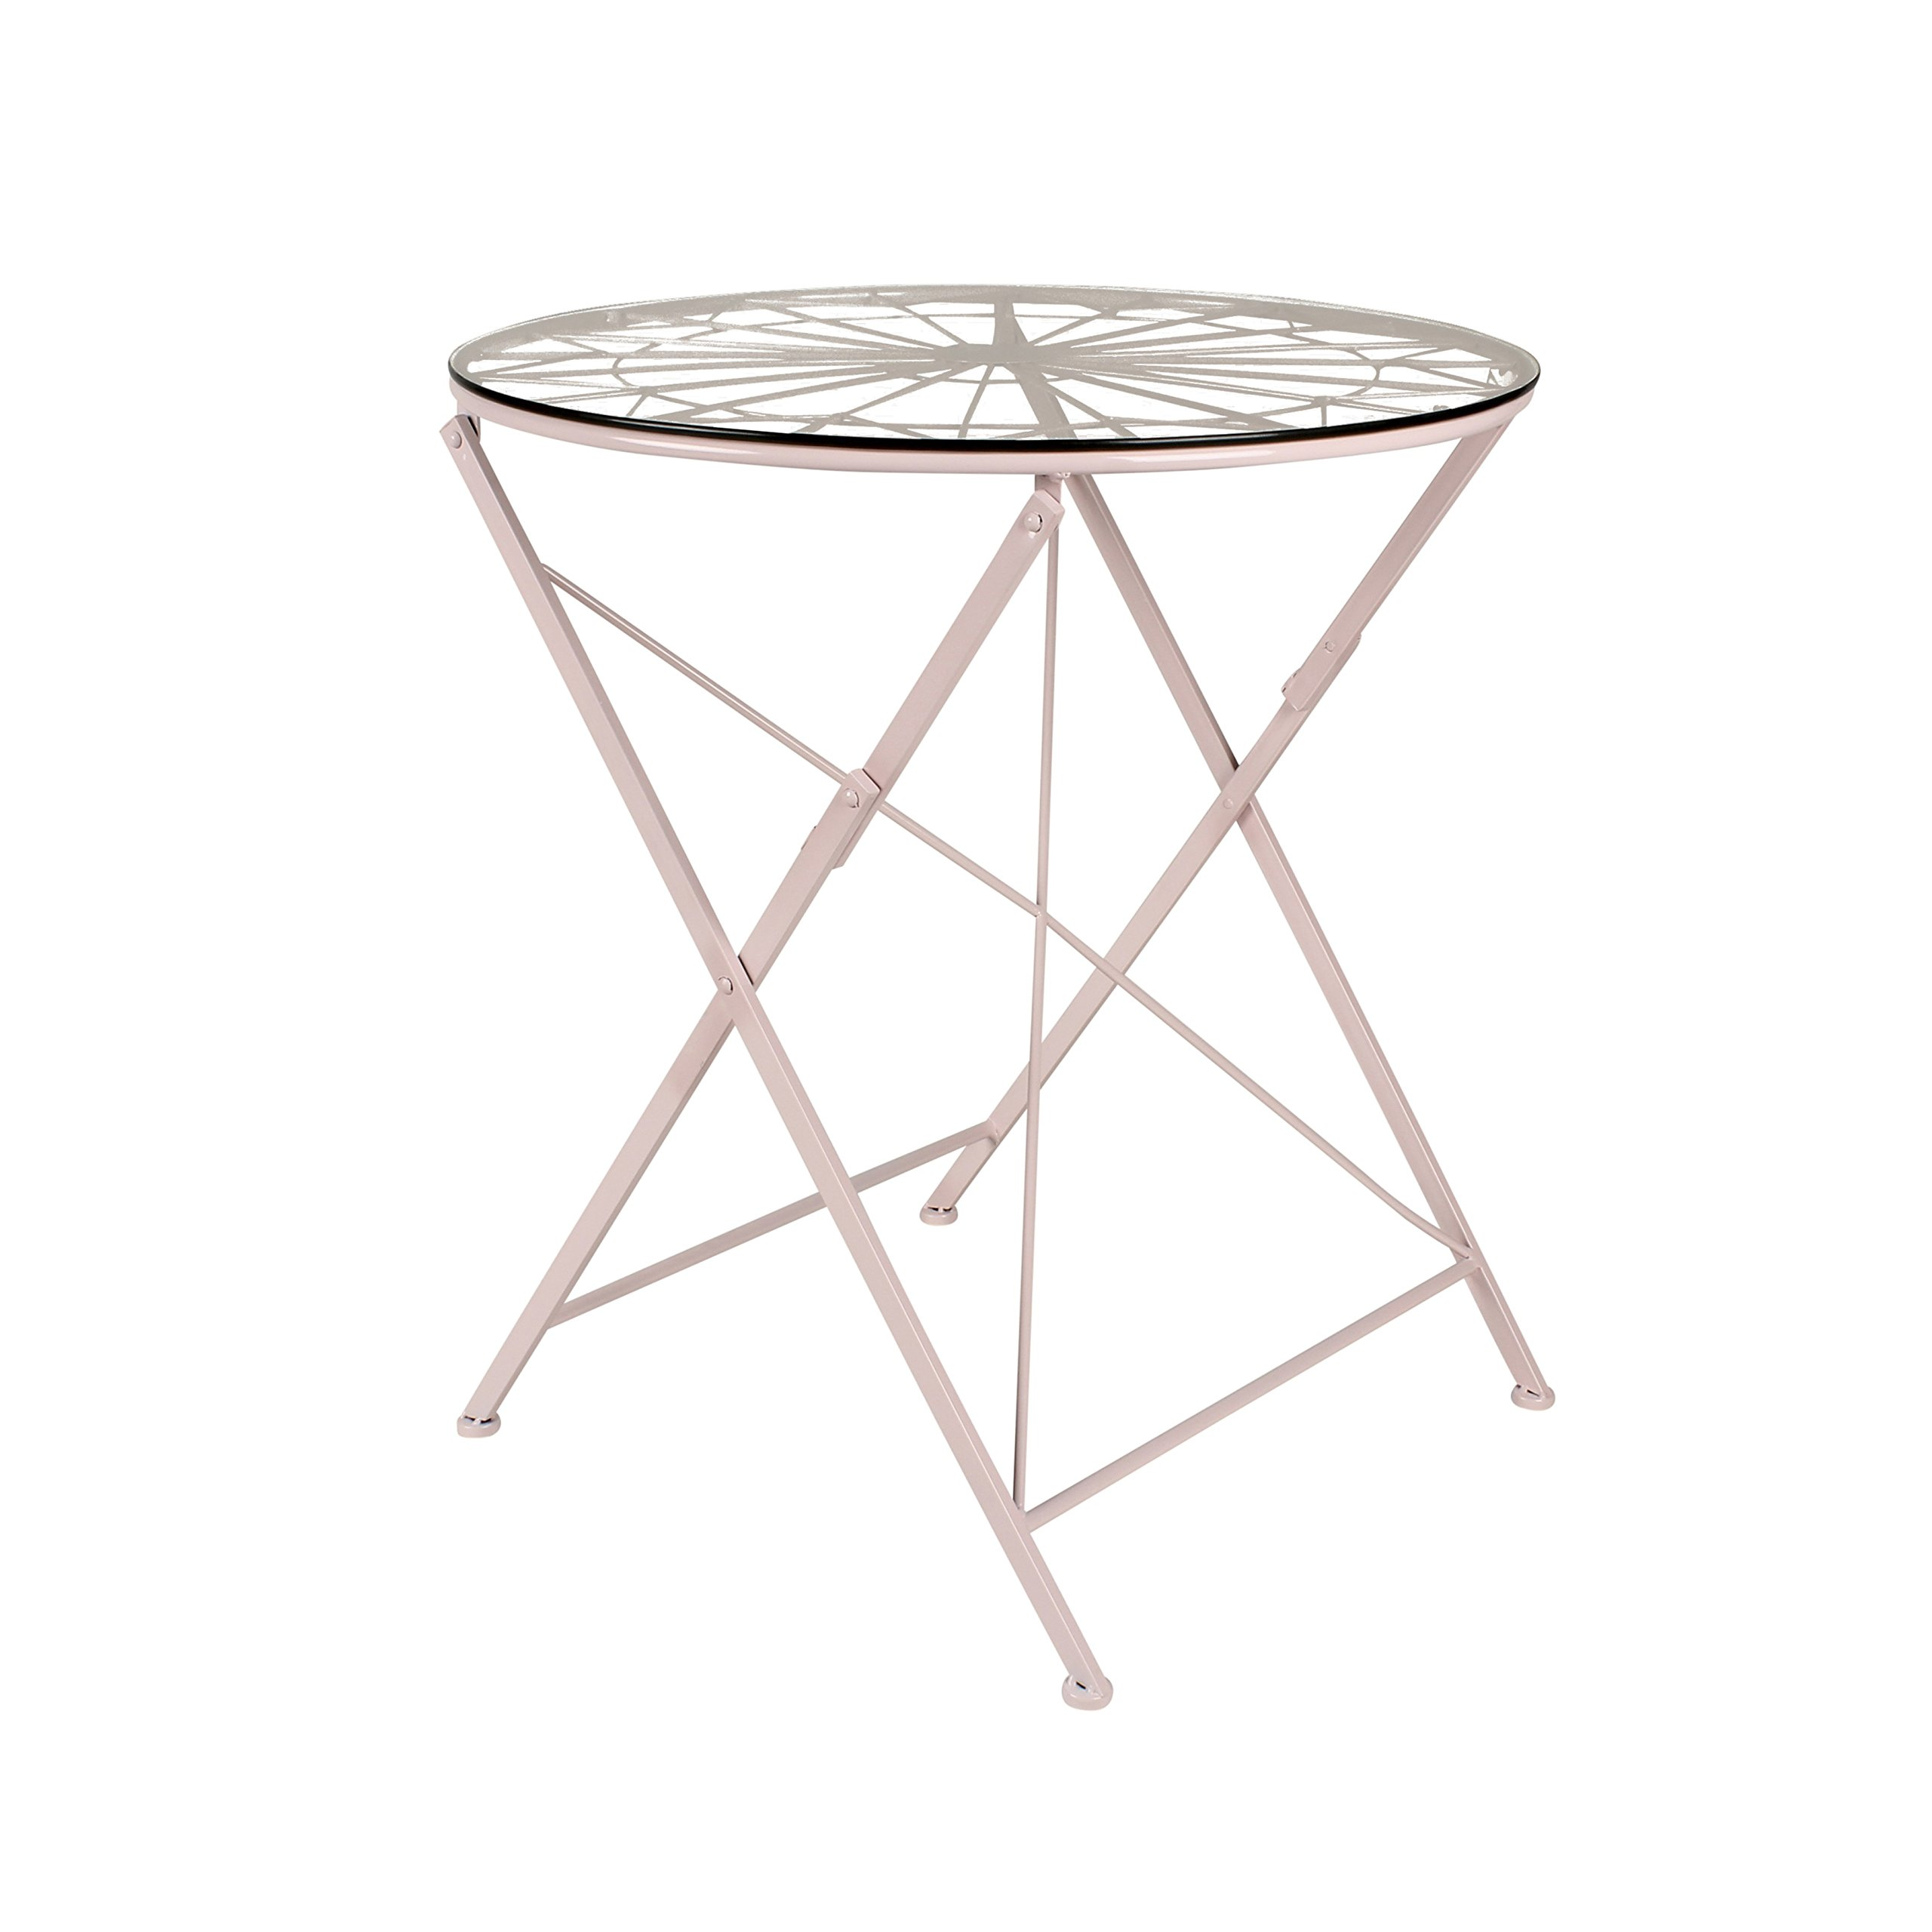 Kate and Laurel Kate & Laurel Thrapston Metal & Glass Round Dining Table, Pink by Kate and Laurel (Image #1)